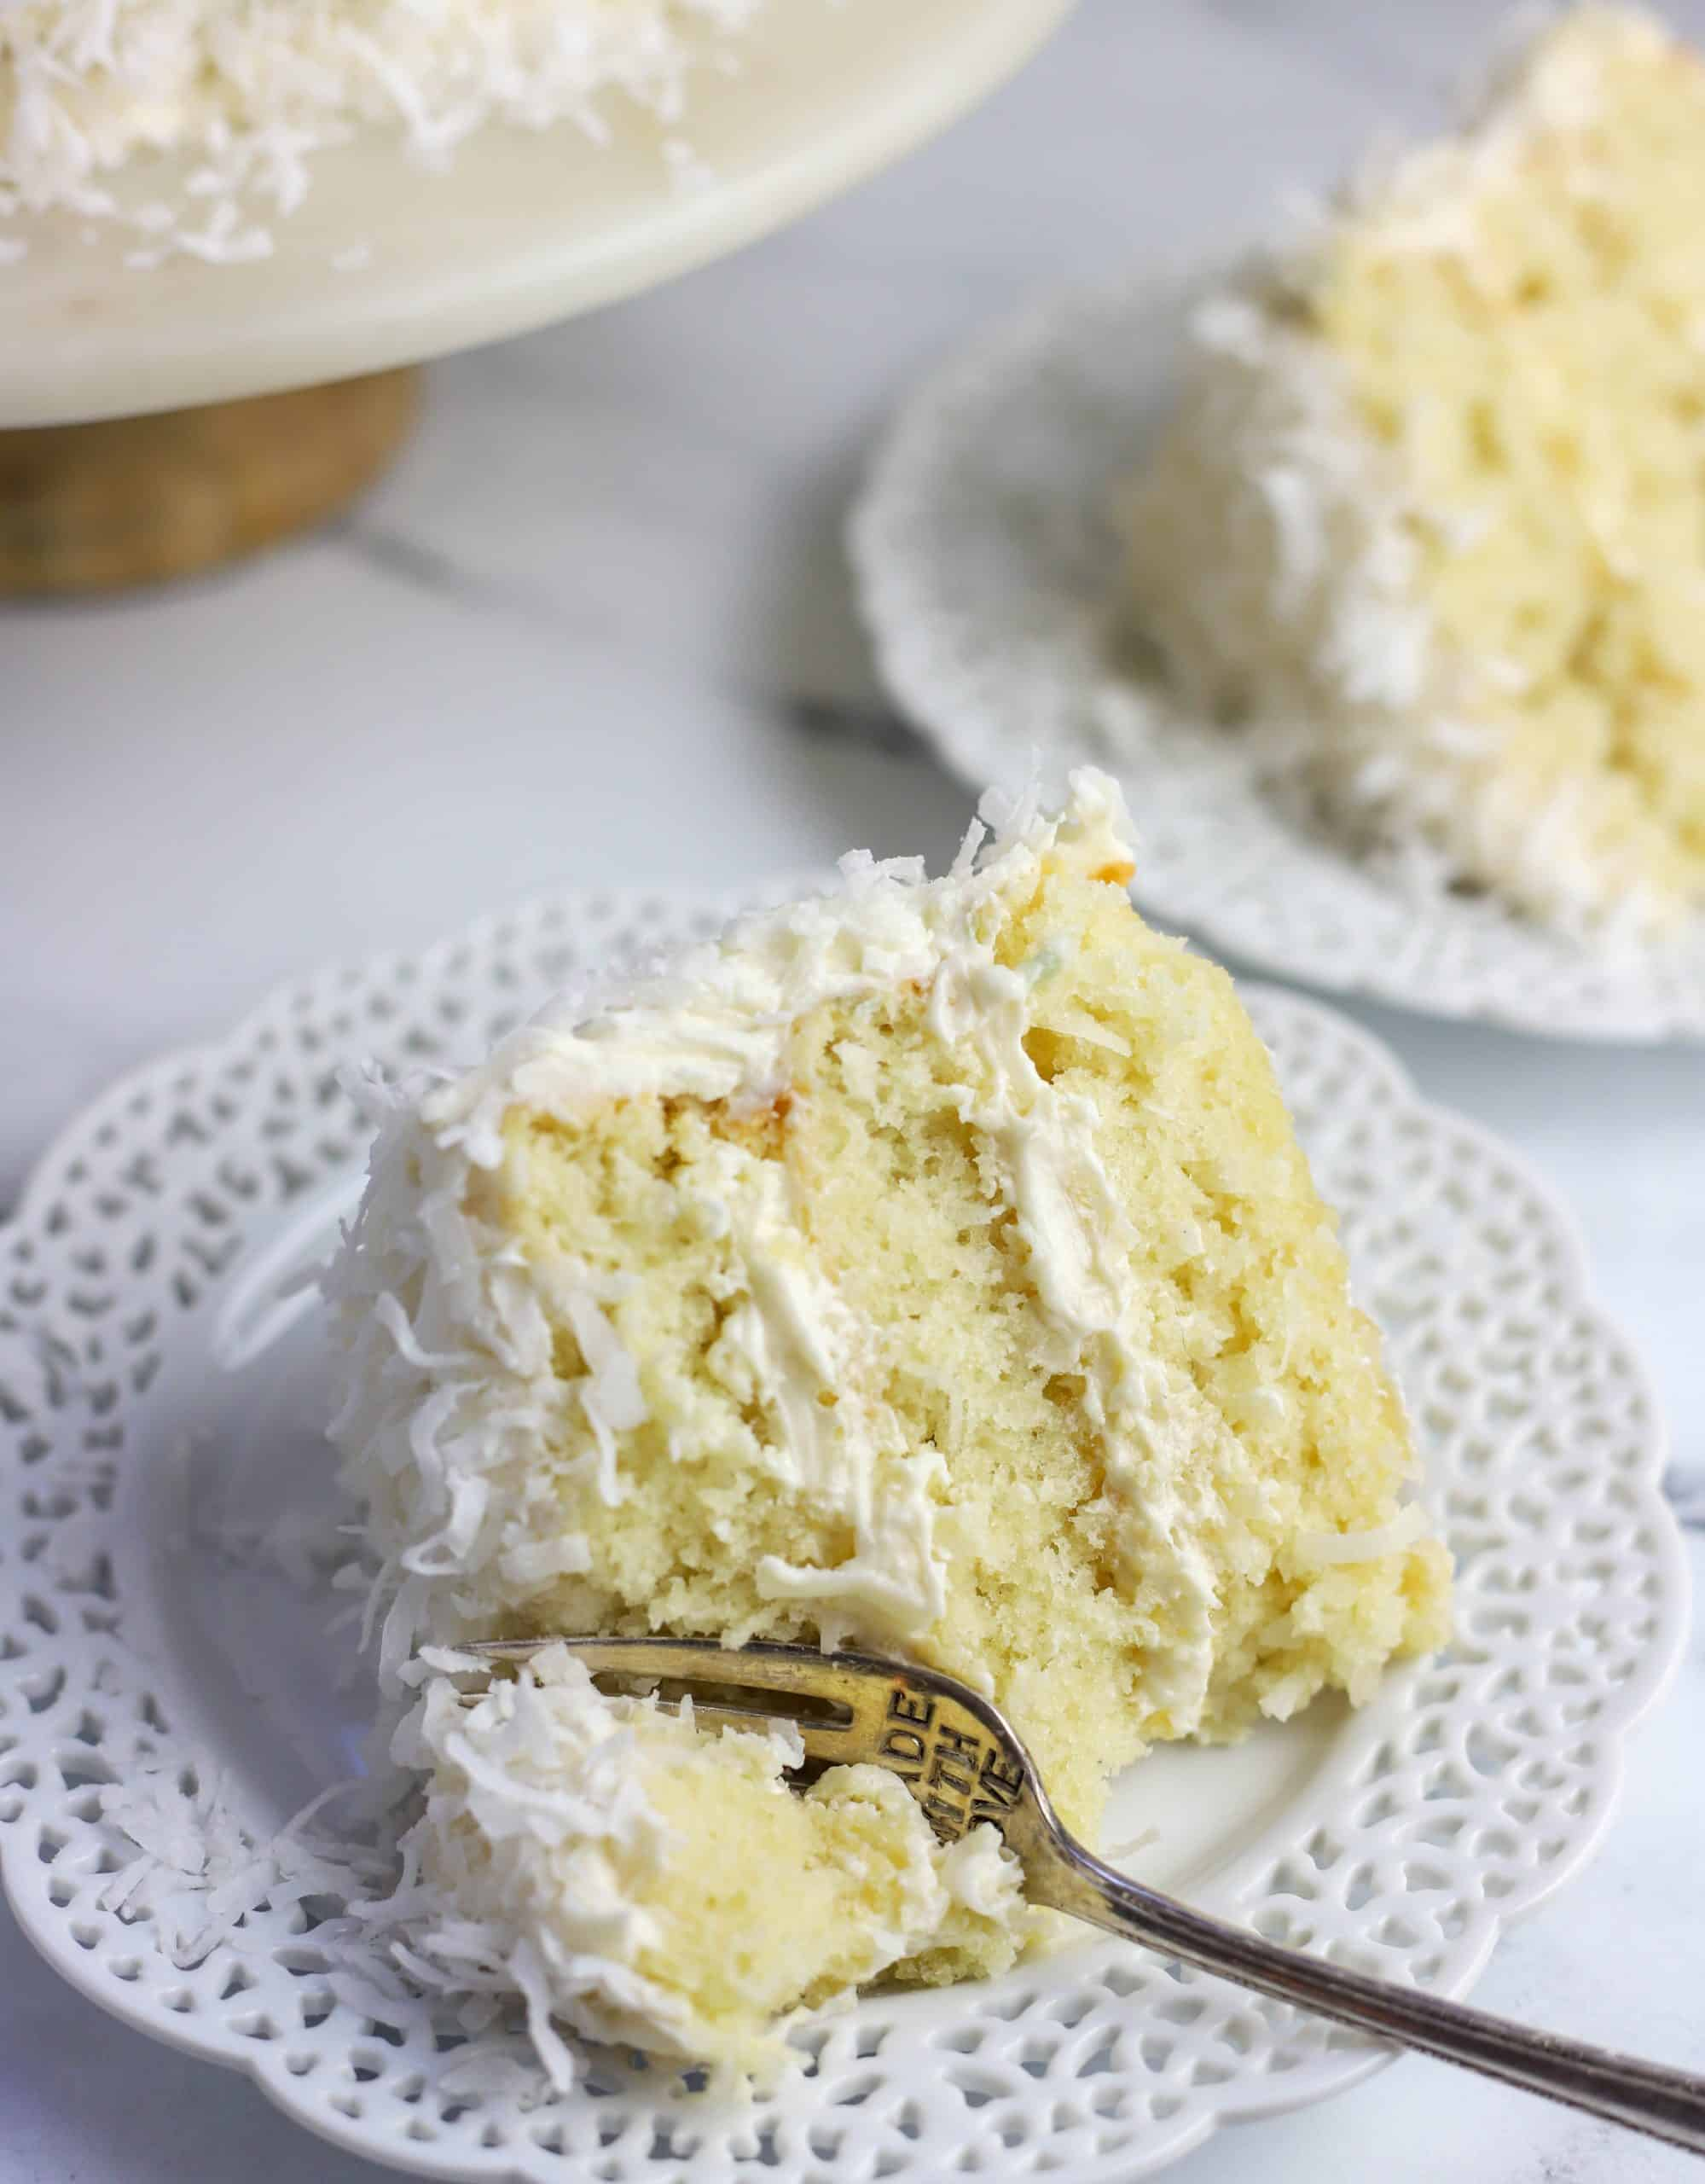 slice of coconut cake on a plate with a fork